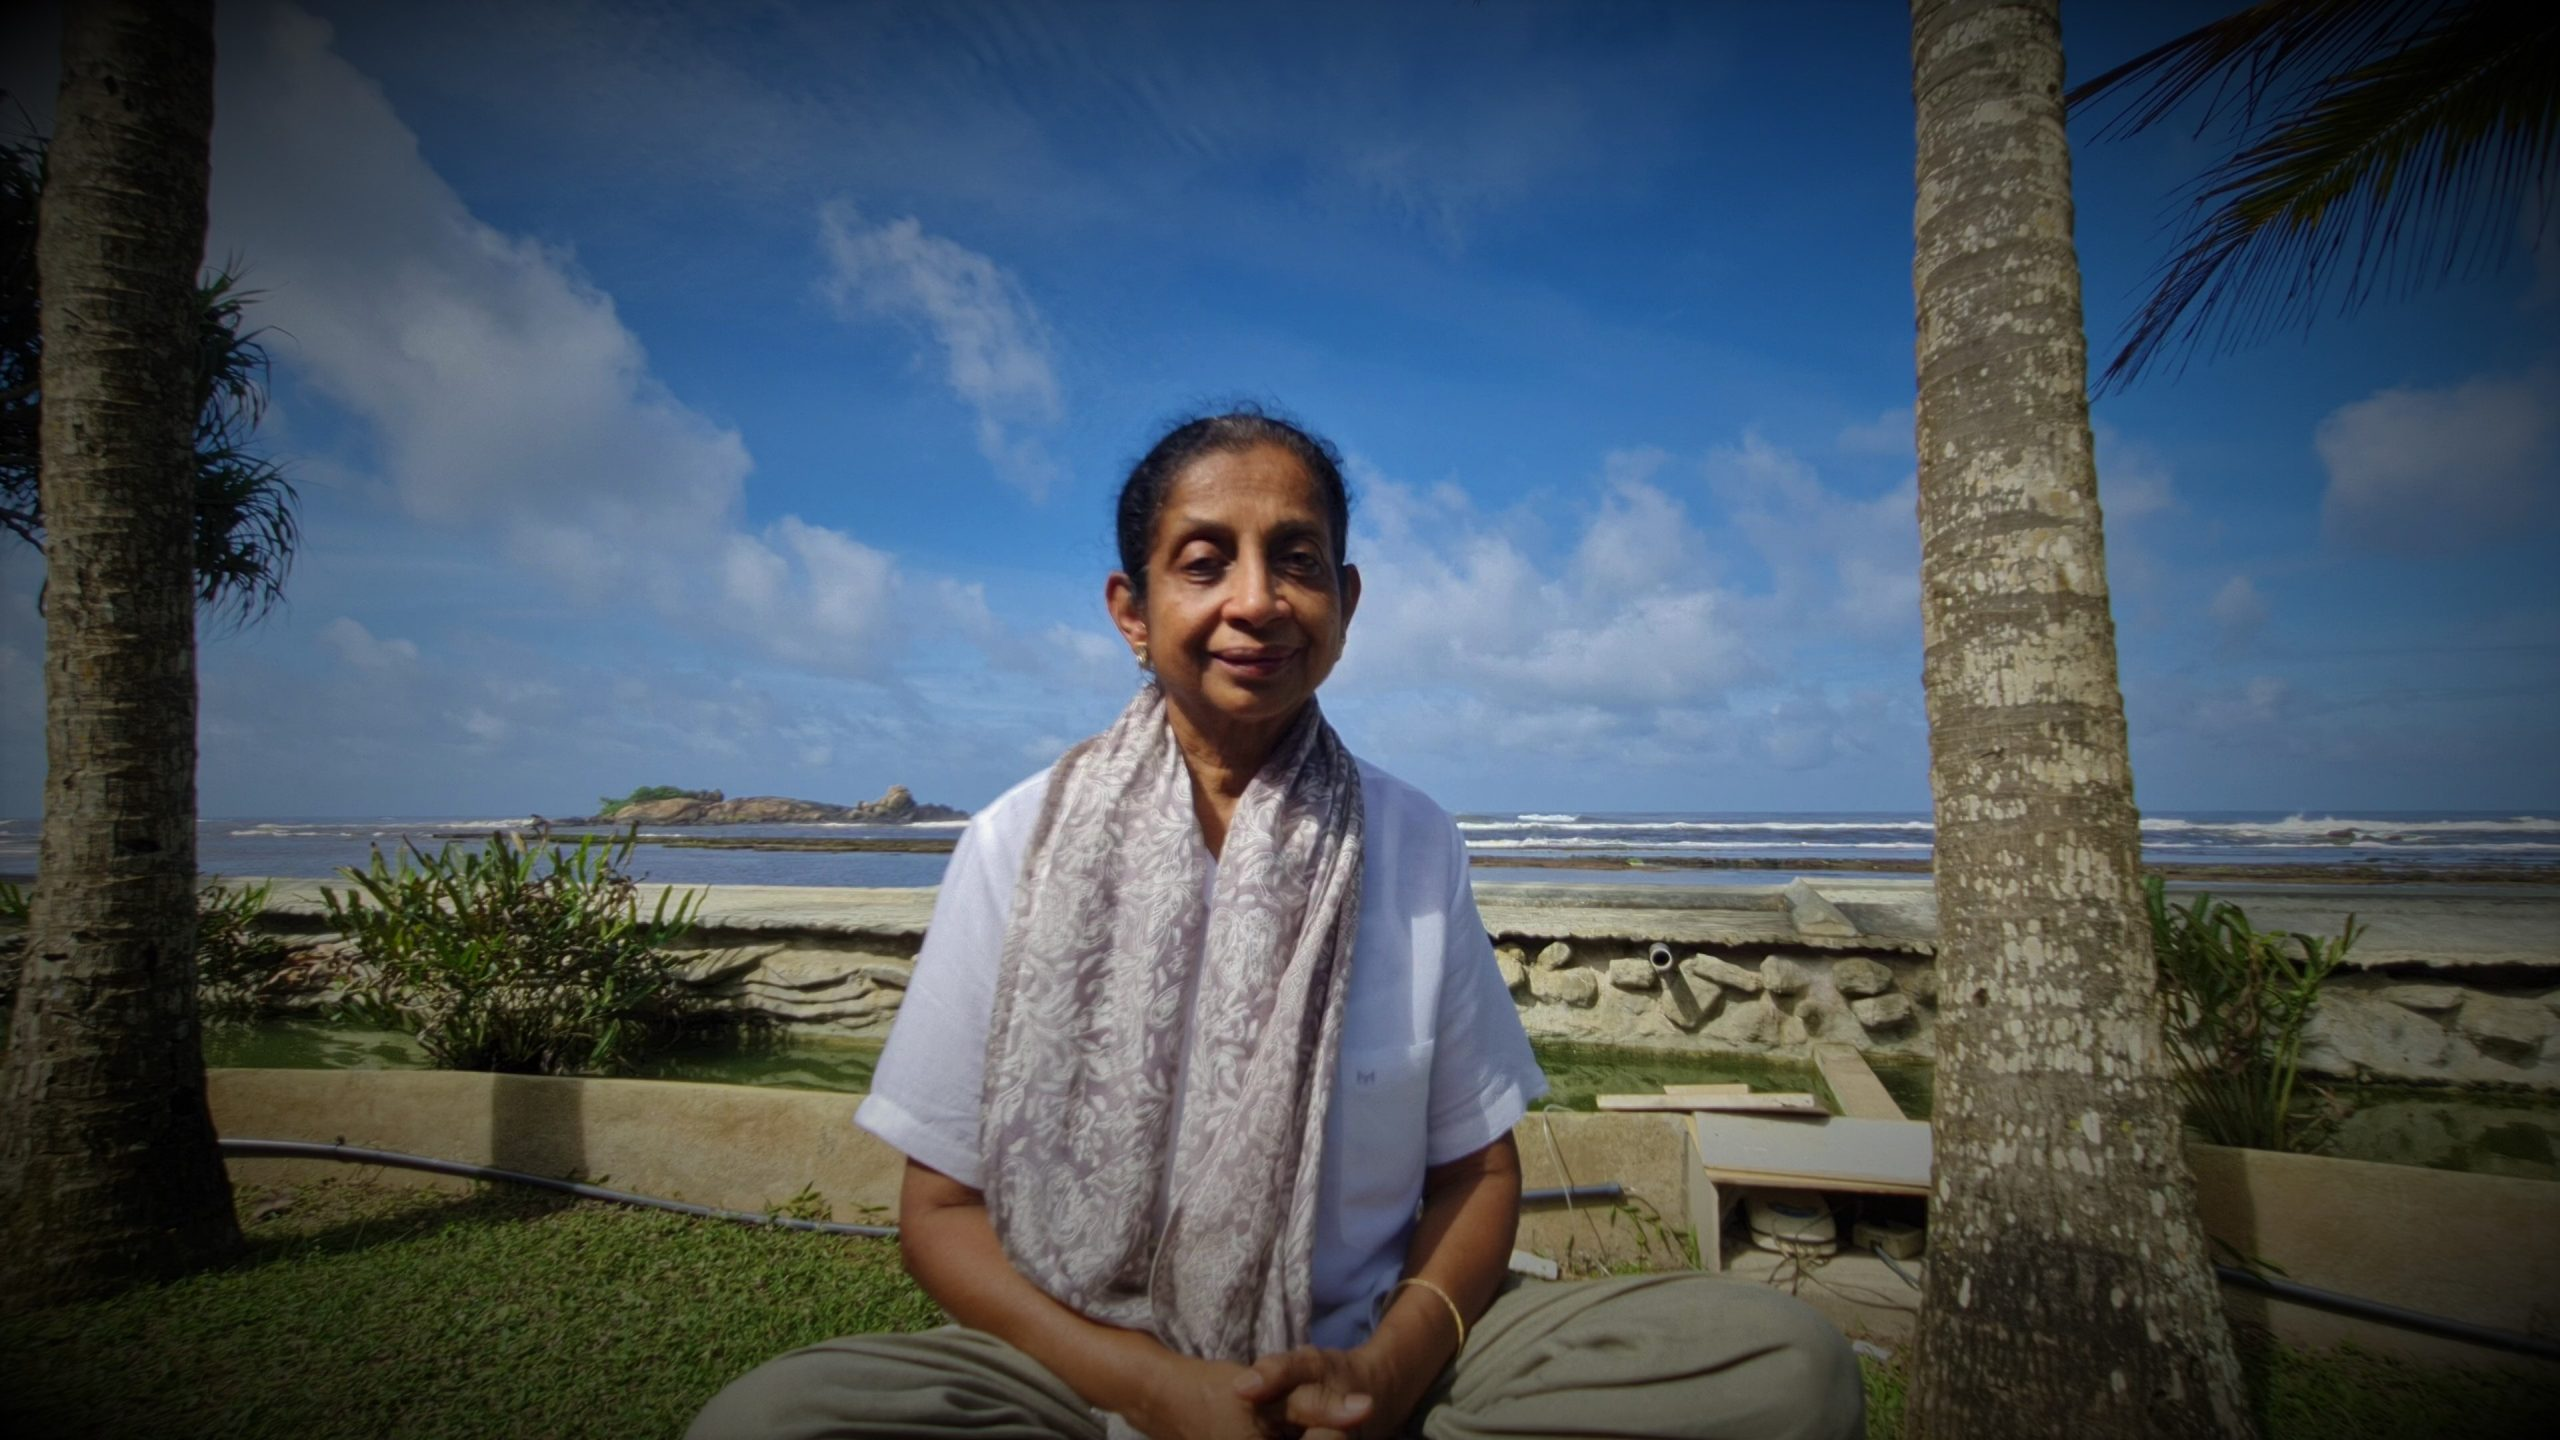 Mindfulness Practice with Geetha